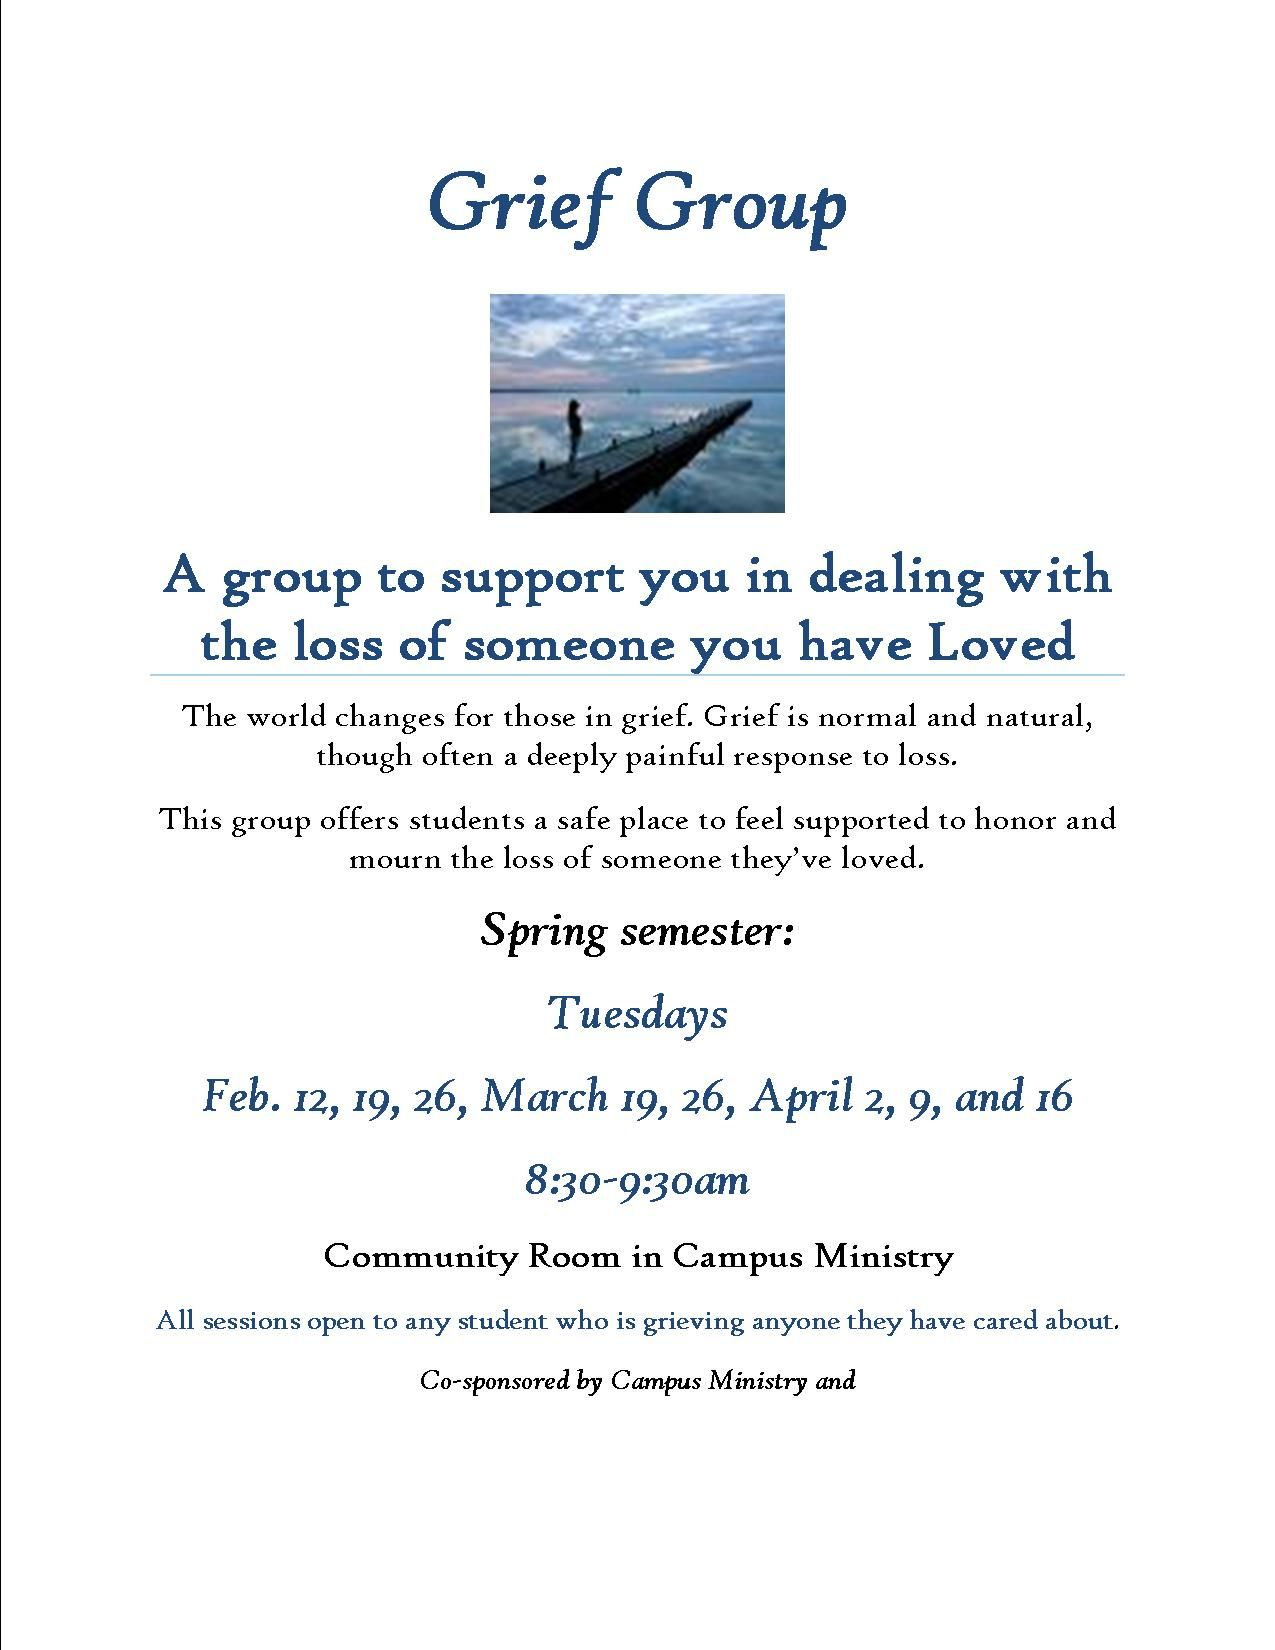 Grief Group Spring